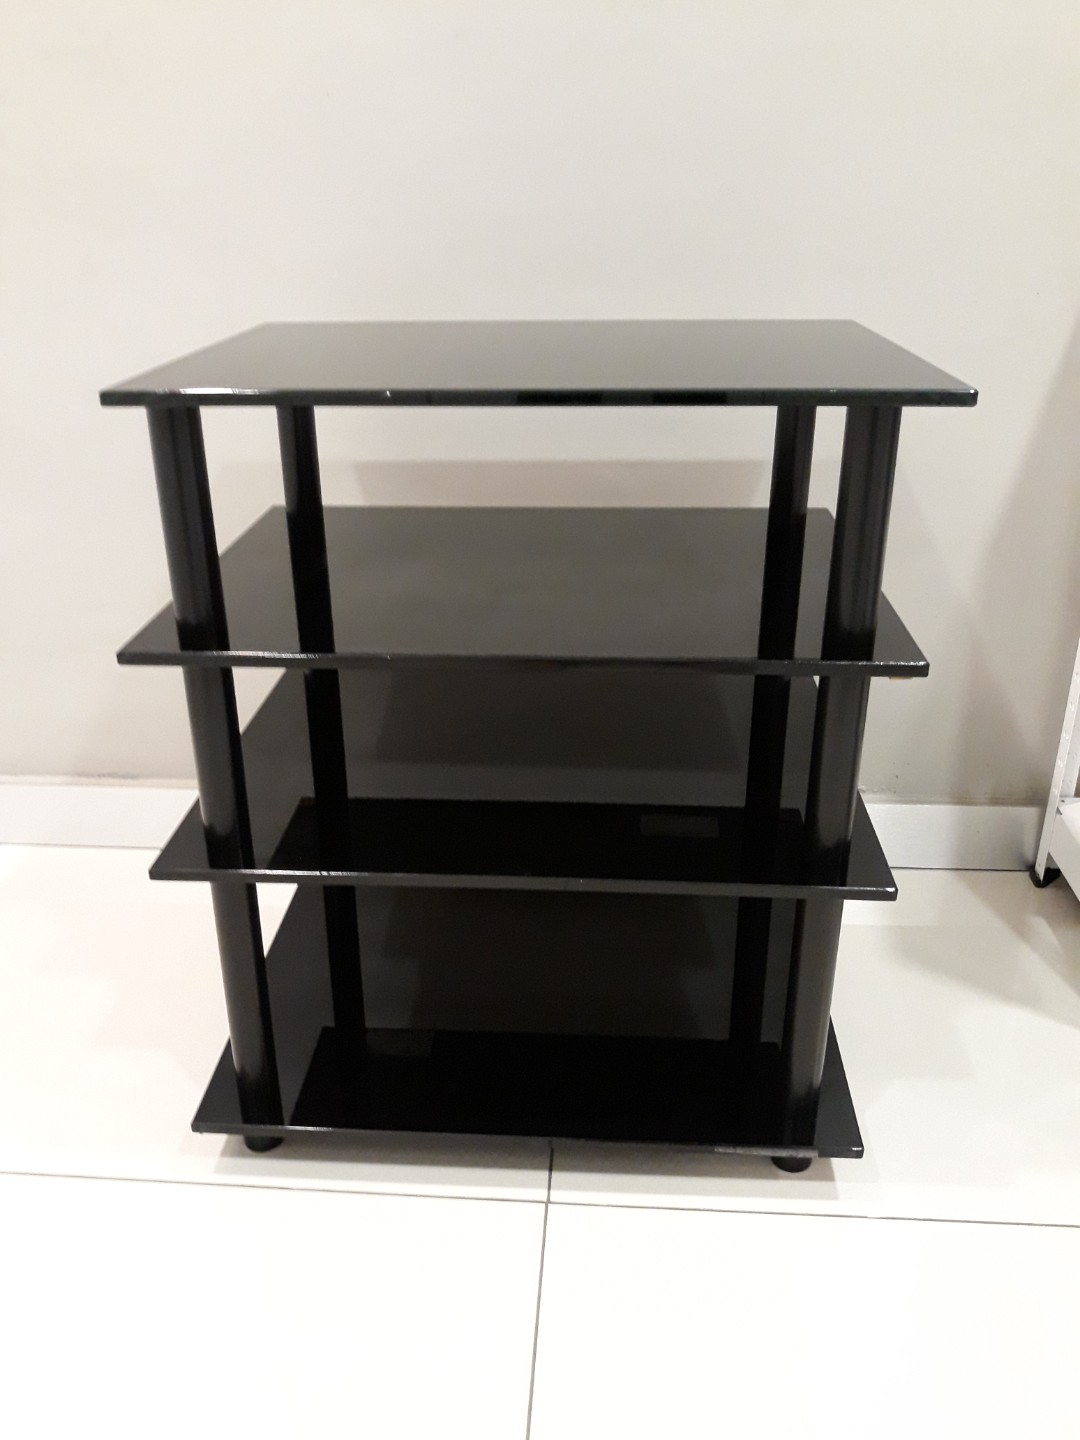 Hifi Rack Design Design Hifi Rack Cheap Black Shelved Tier Hifi Rack With Silver